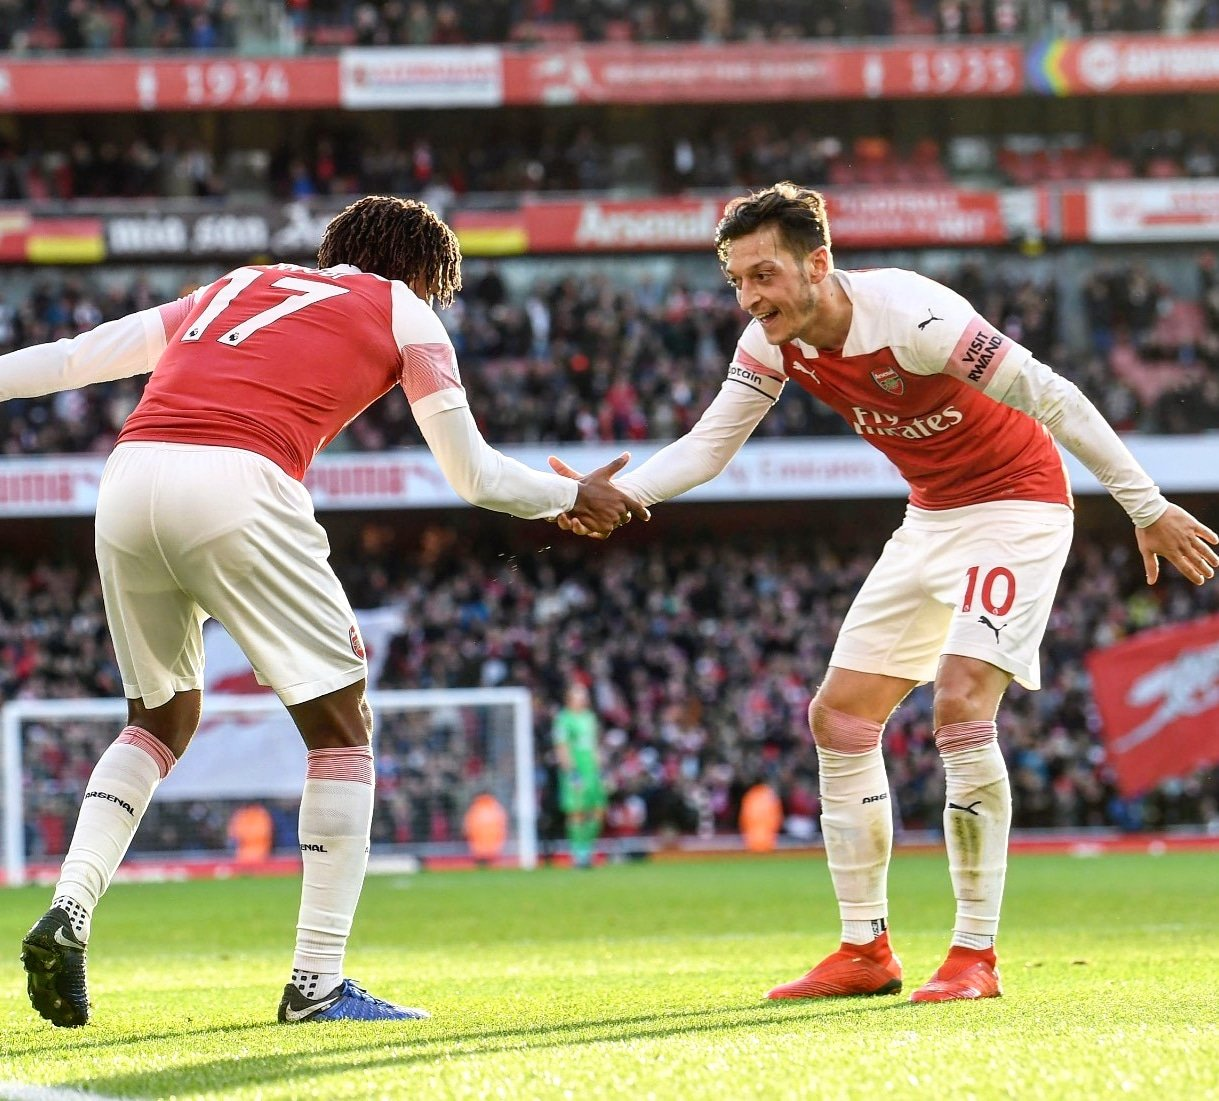 Emery: I'm Thinking How Ozil Can Help Arsenal, Not Transfer Rumours